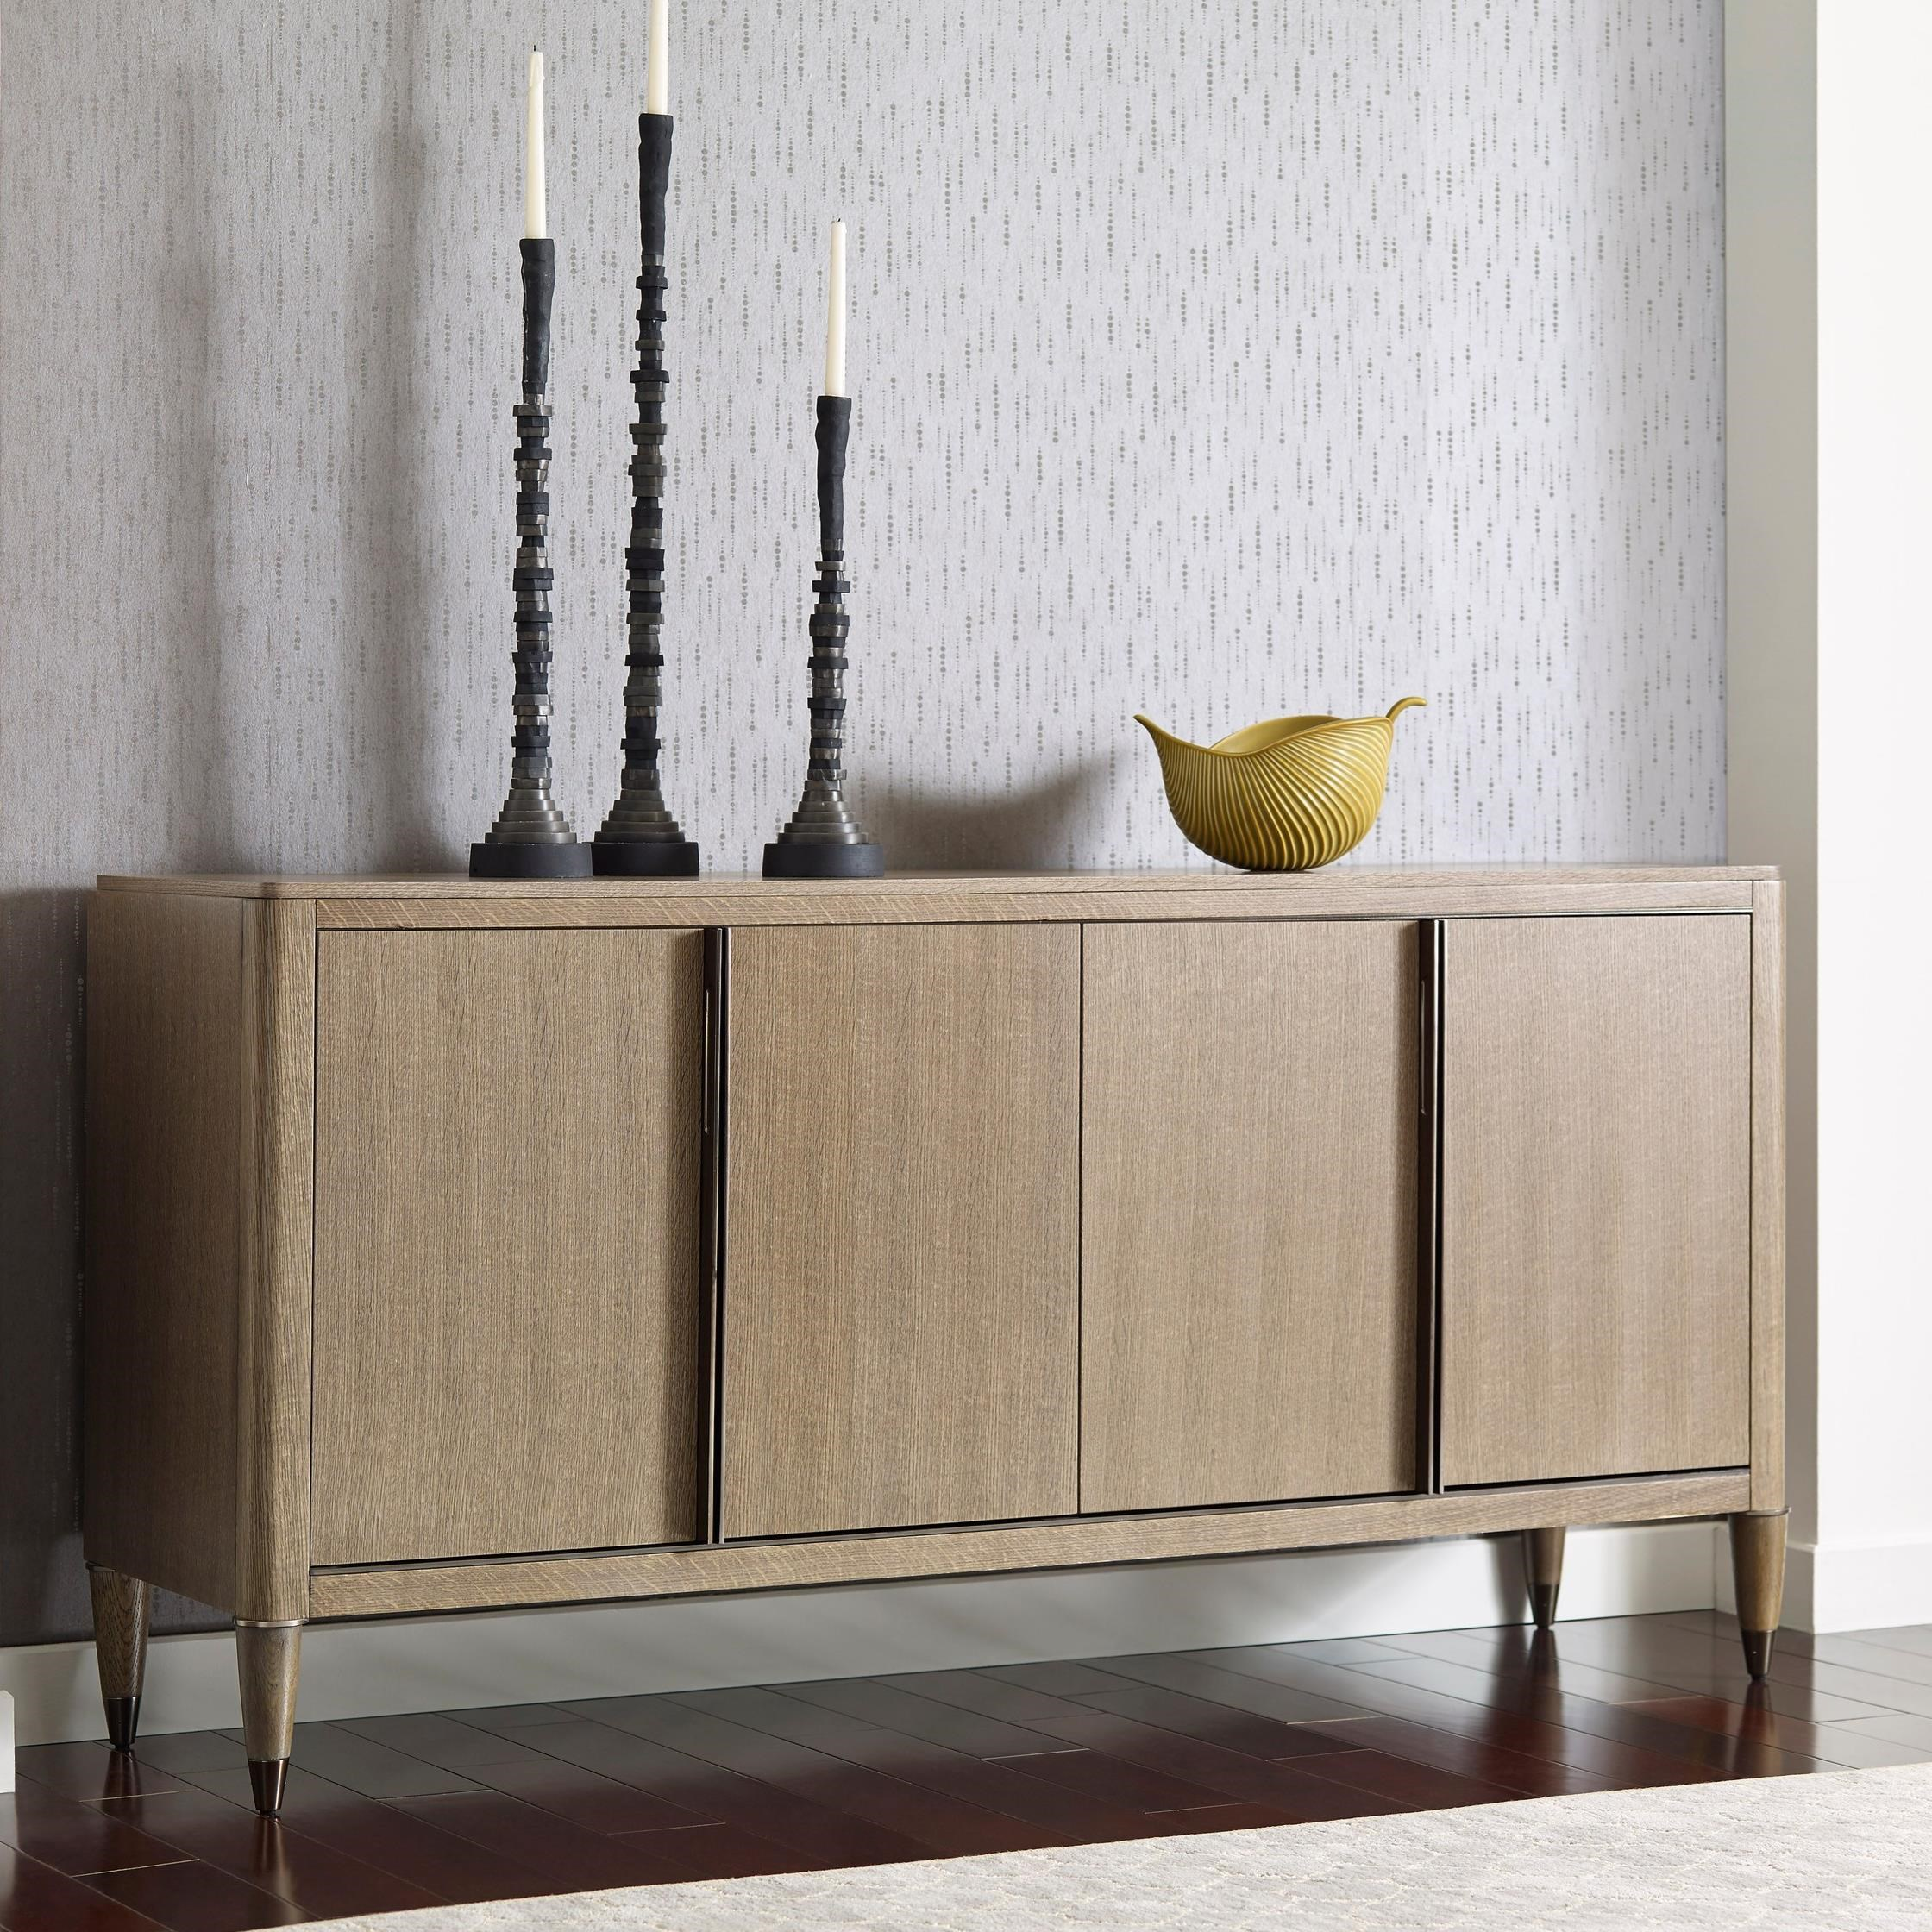 Ad Modern Classics Darby Credenza by American Drew at Suburban Furniture